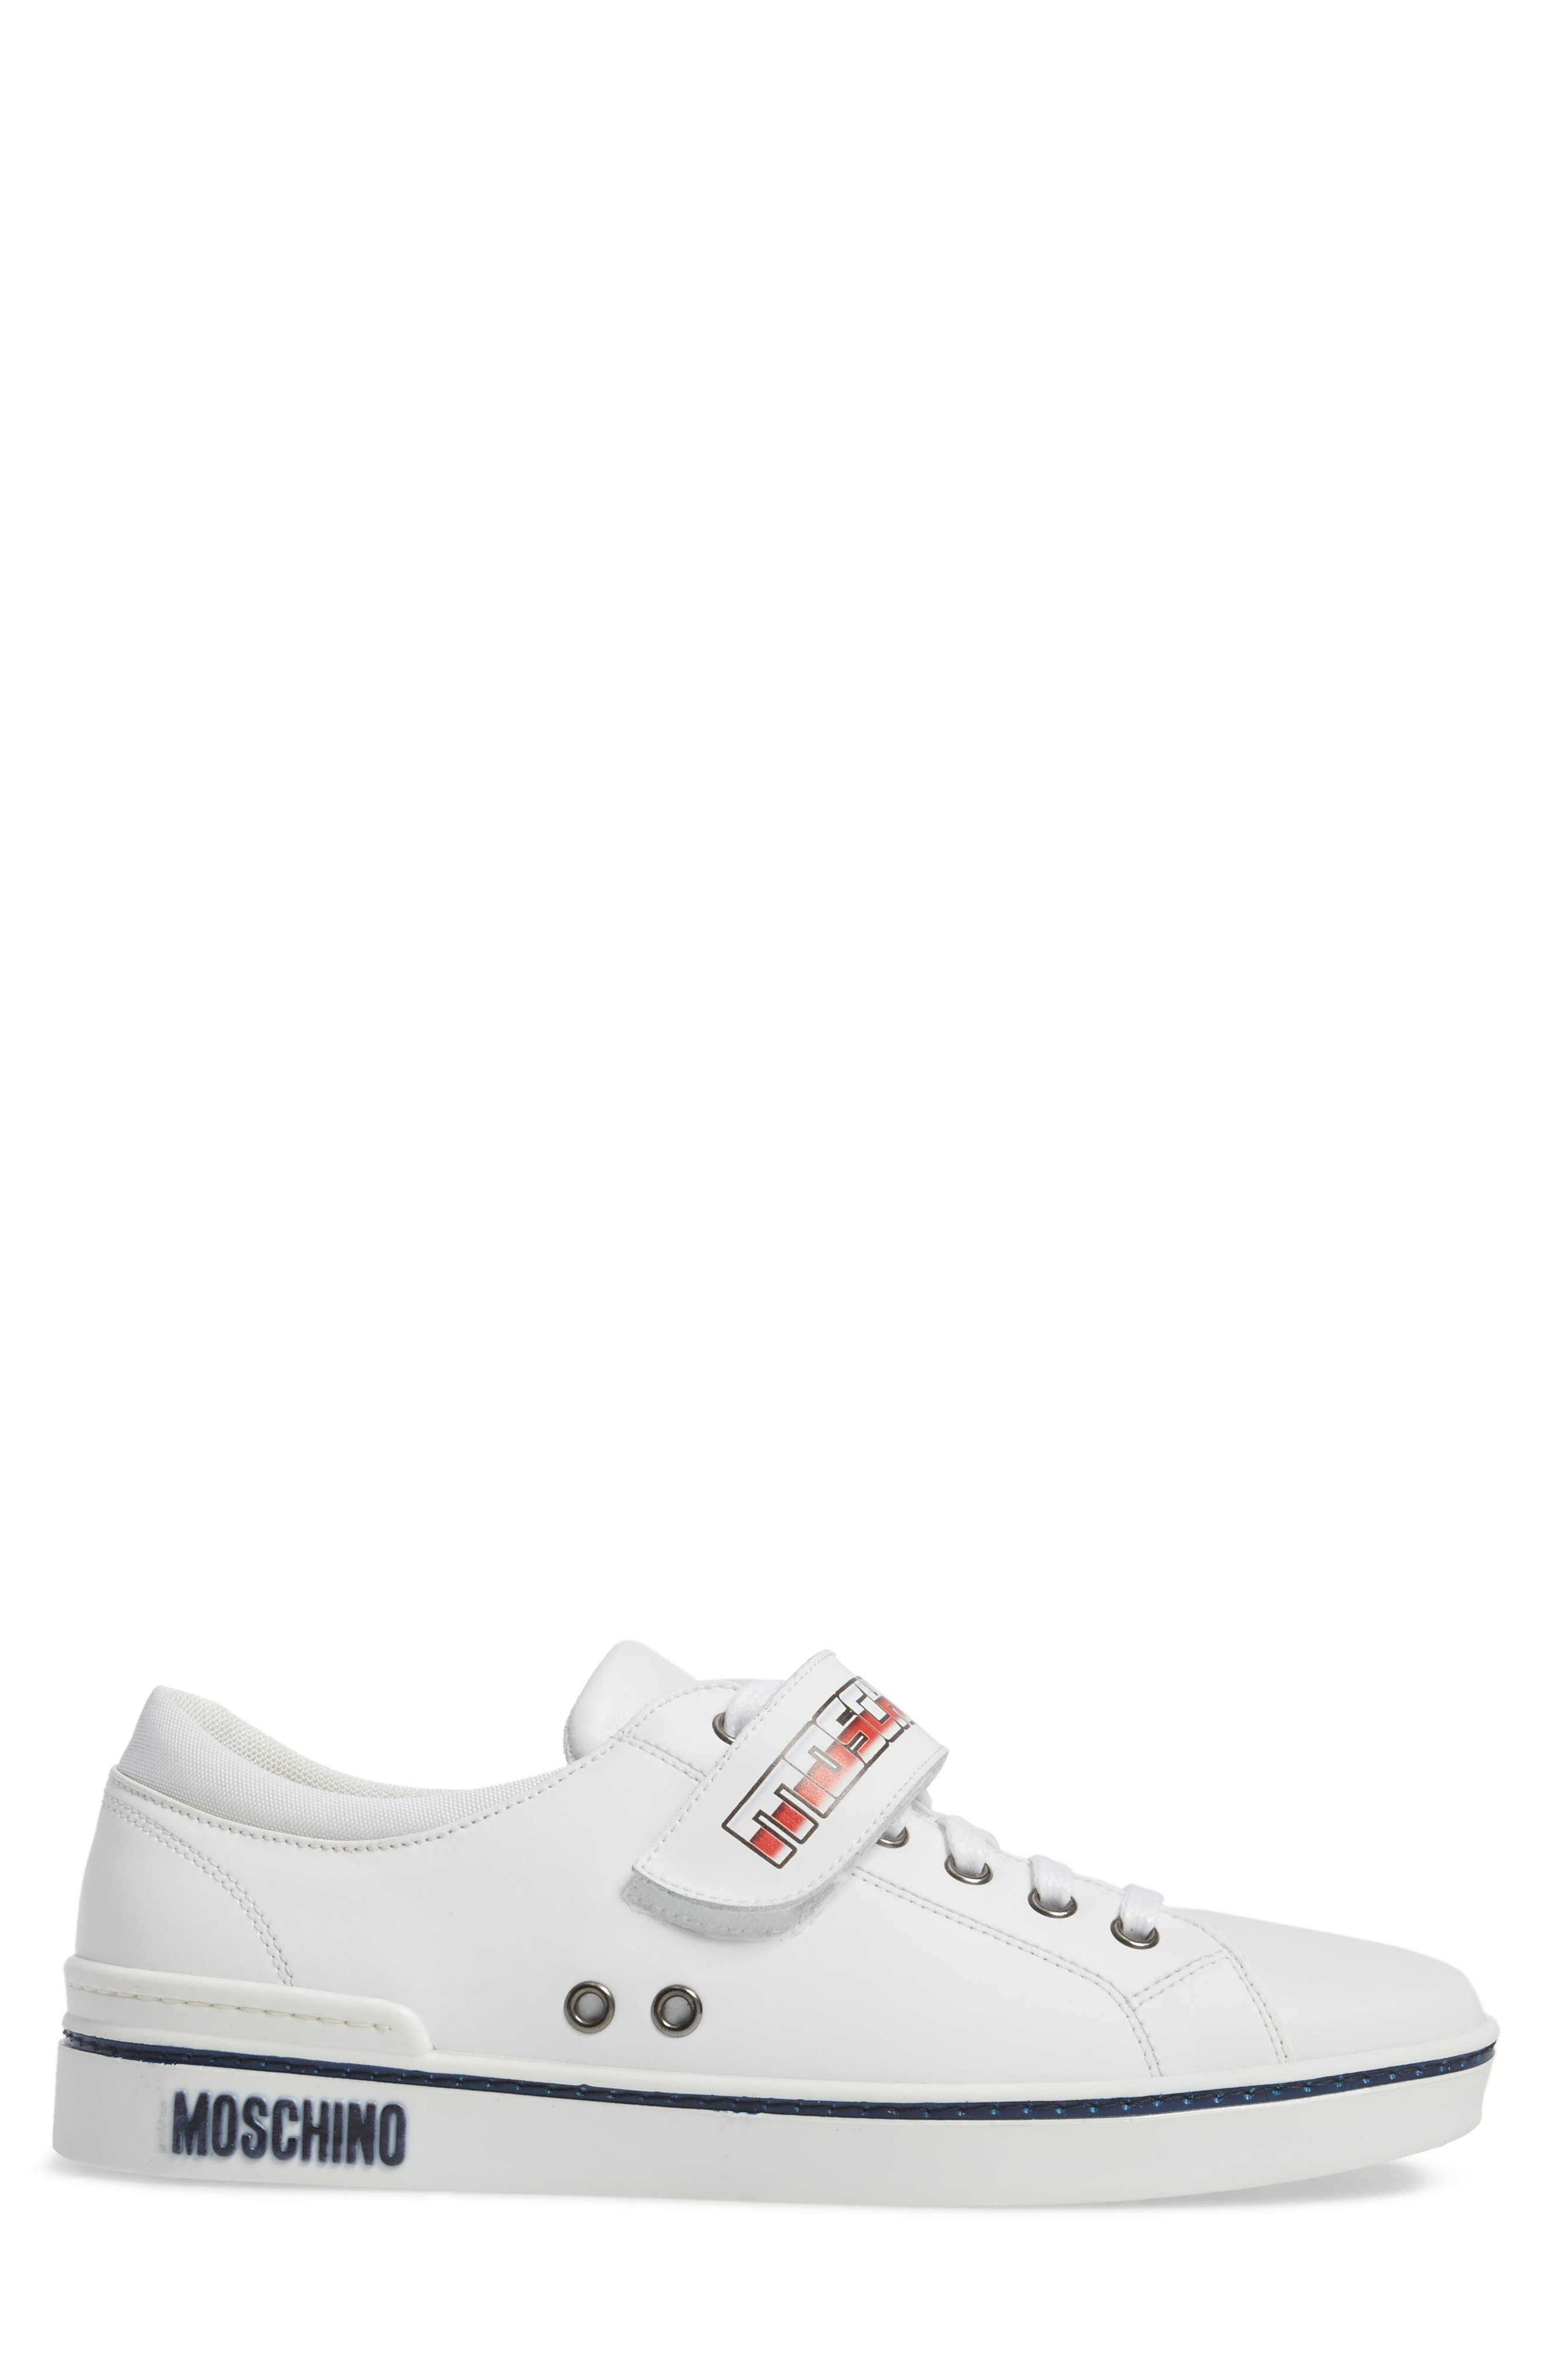 Strap Sneaker,                             Alternate thumbnail 3, color,                             White Leather